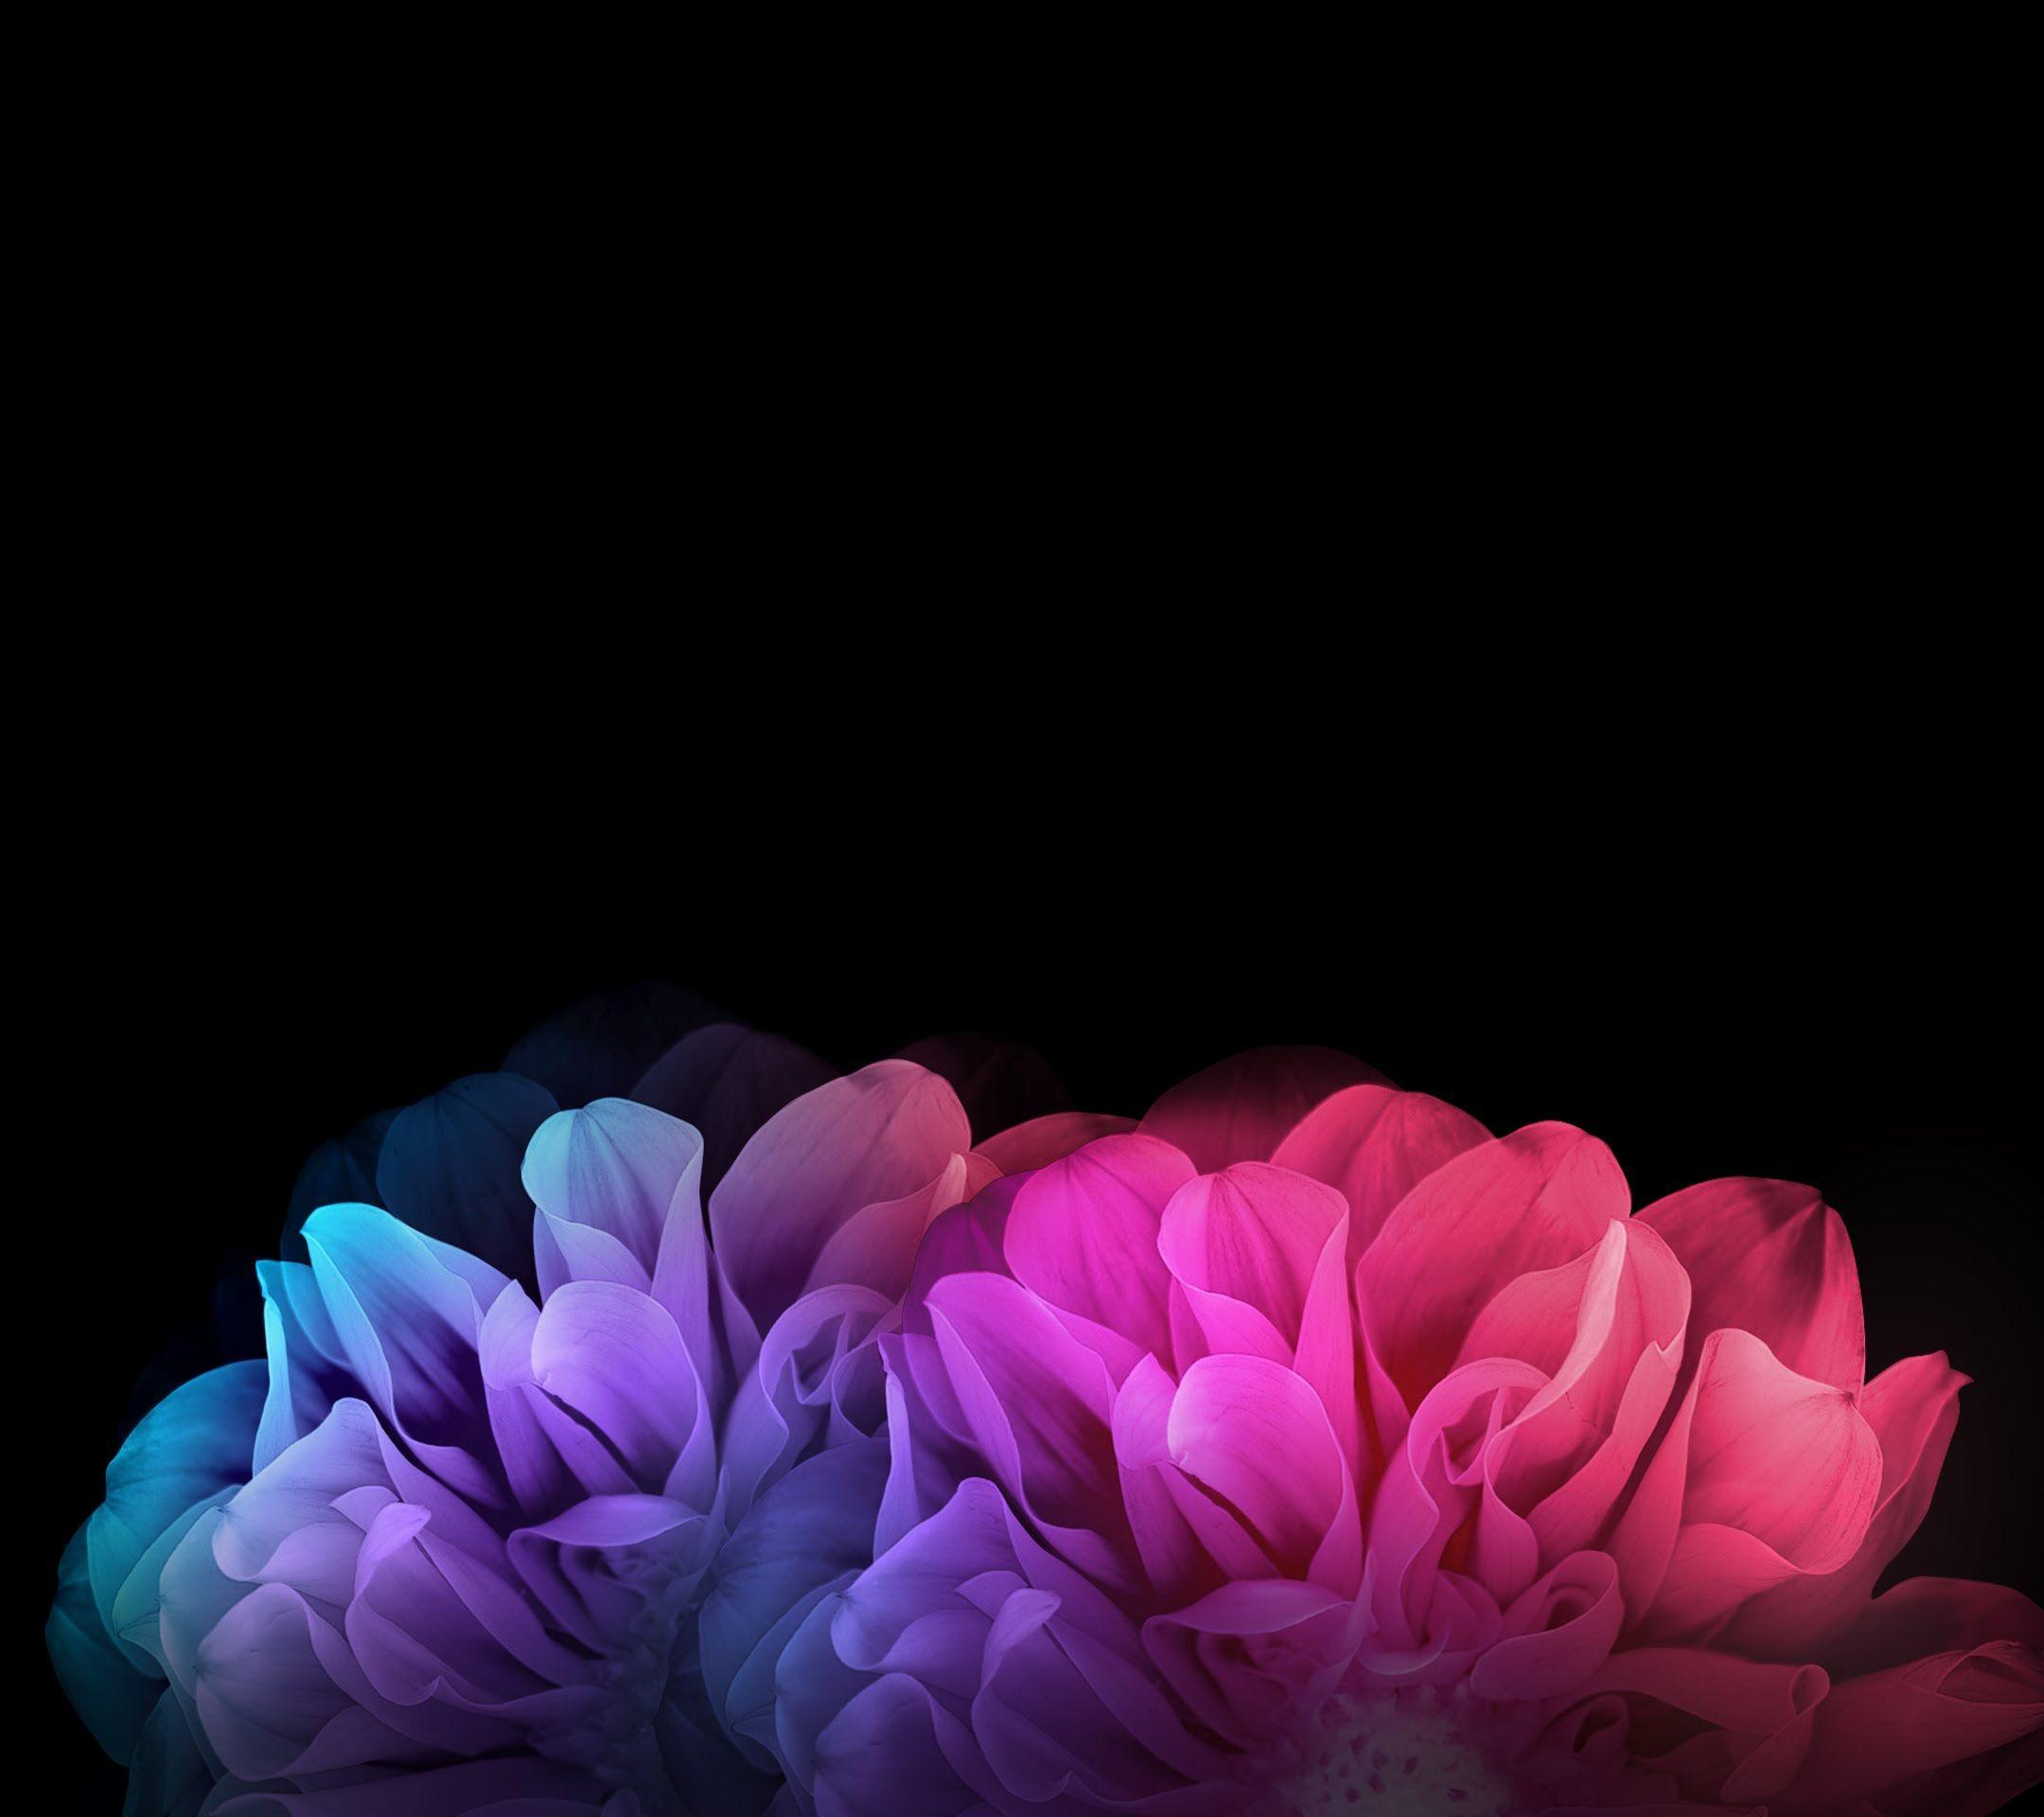 LG Flex 2 Official Wallpapers - YouTube